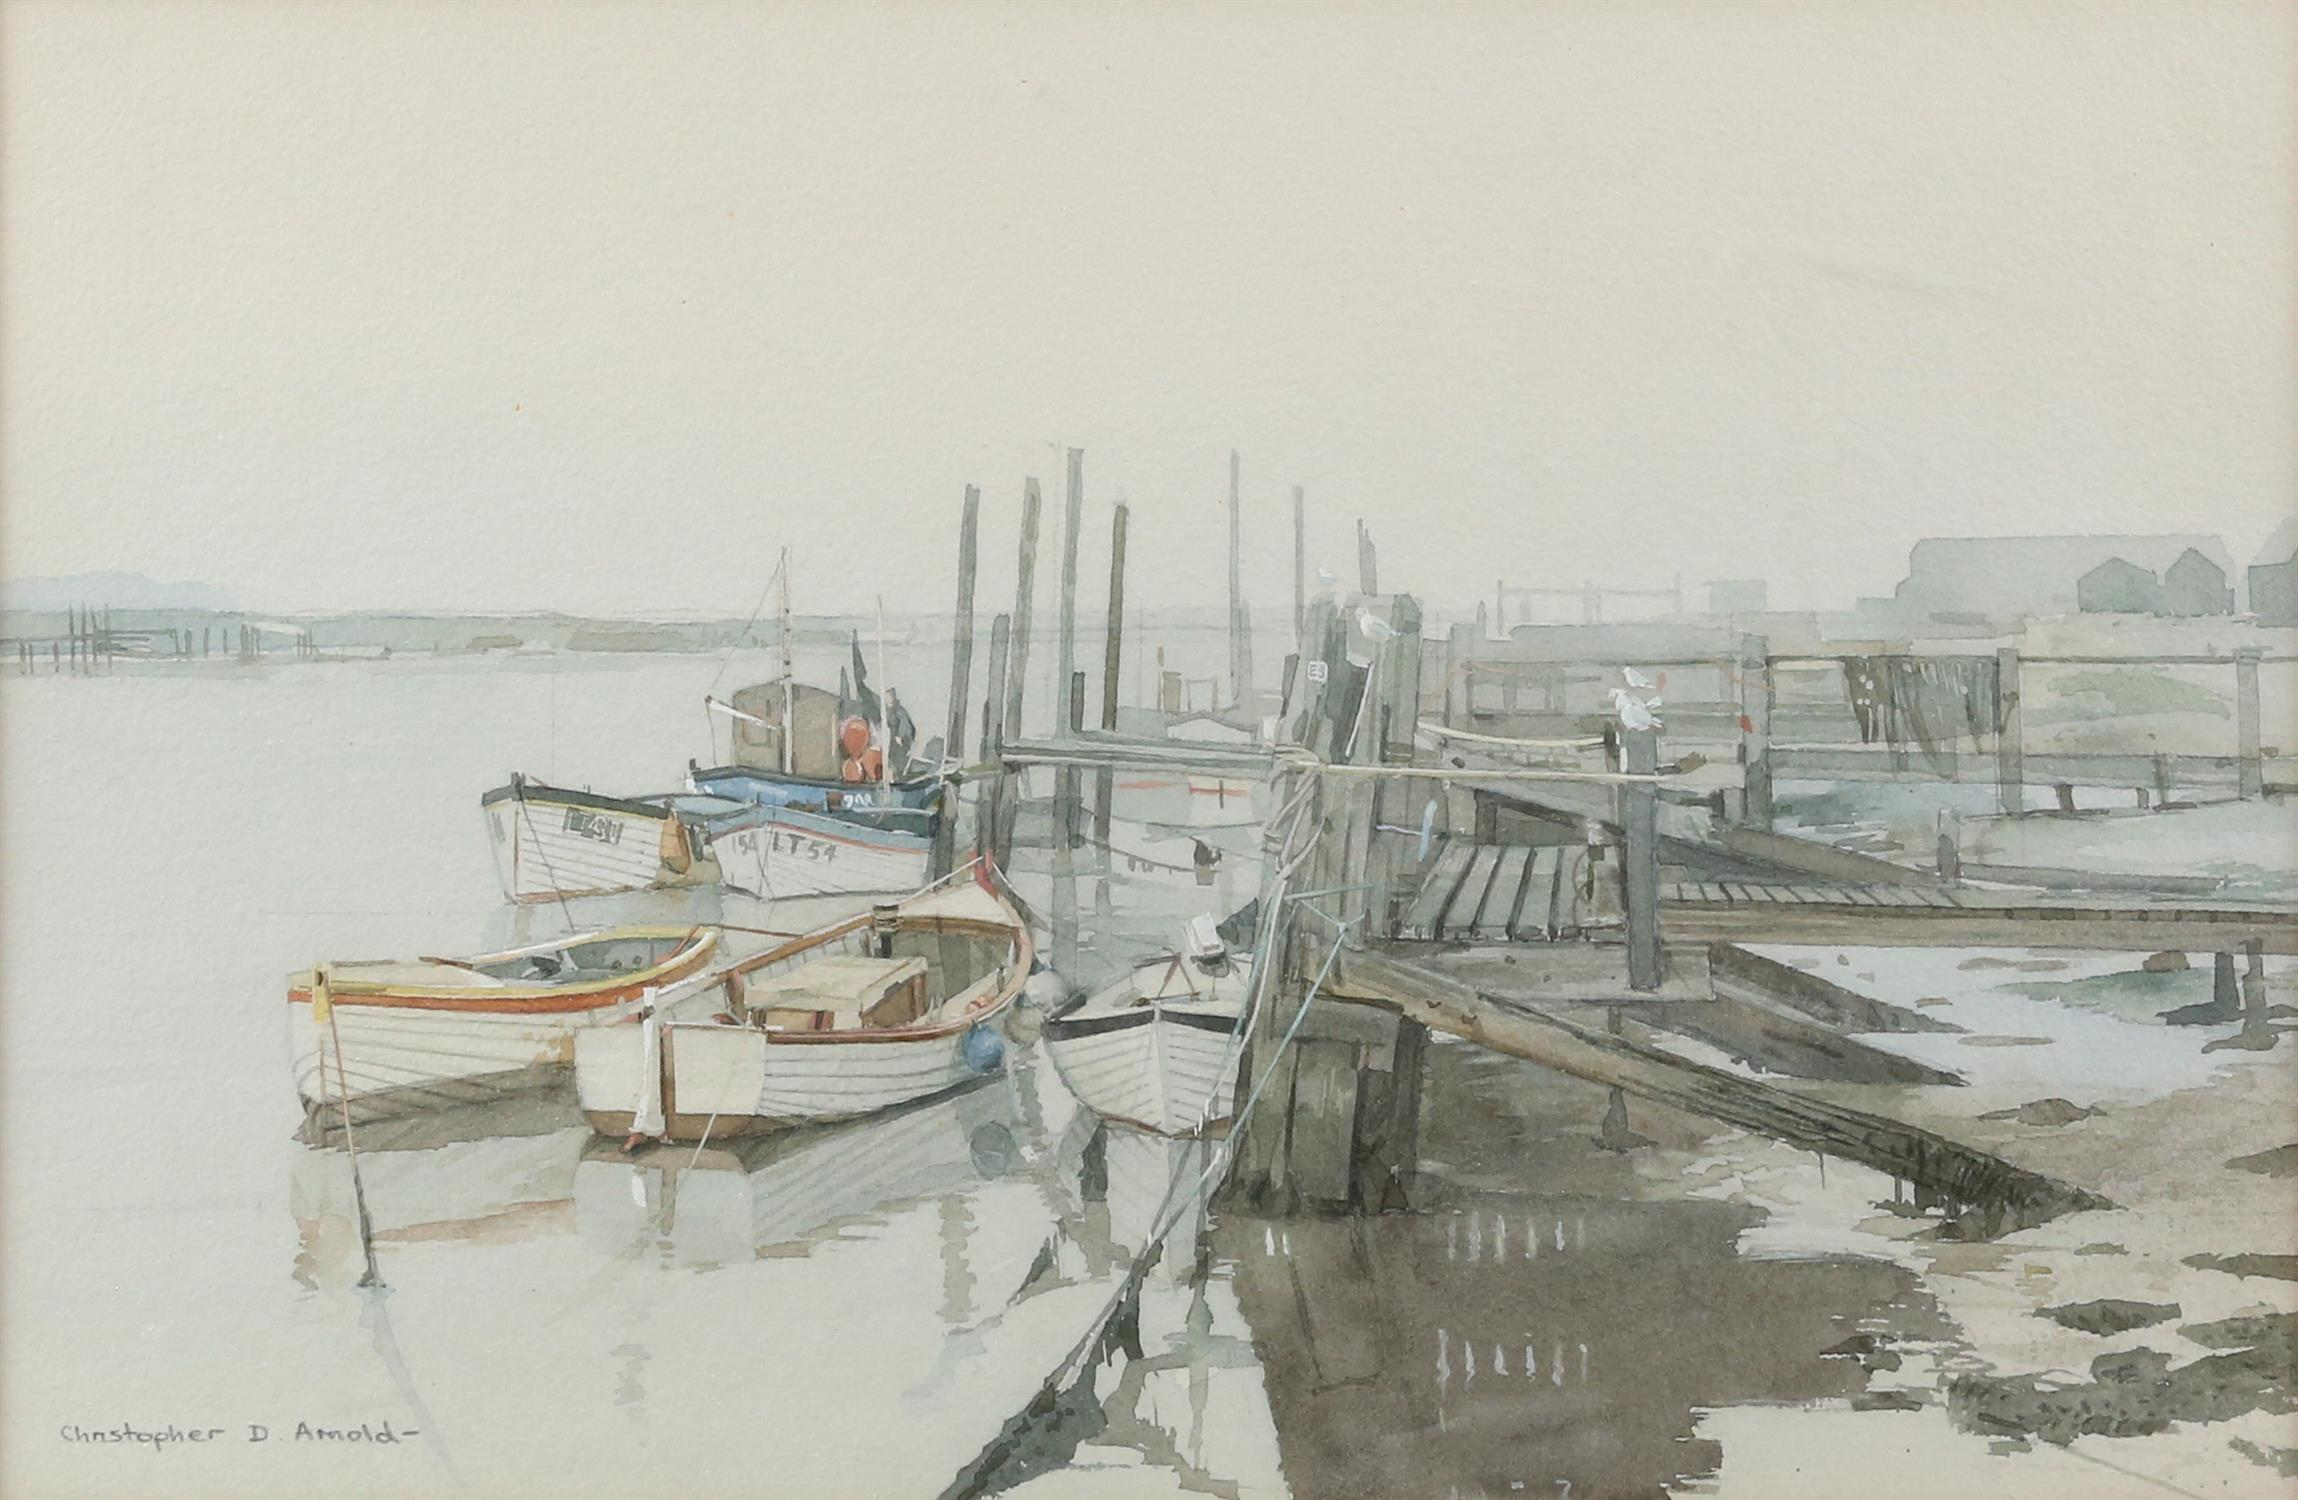 Christopher D Arnold (British, b. 1955), 'Fishing Boats, Southwold, Sussex', signed, watercolour,